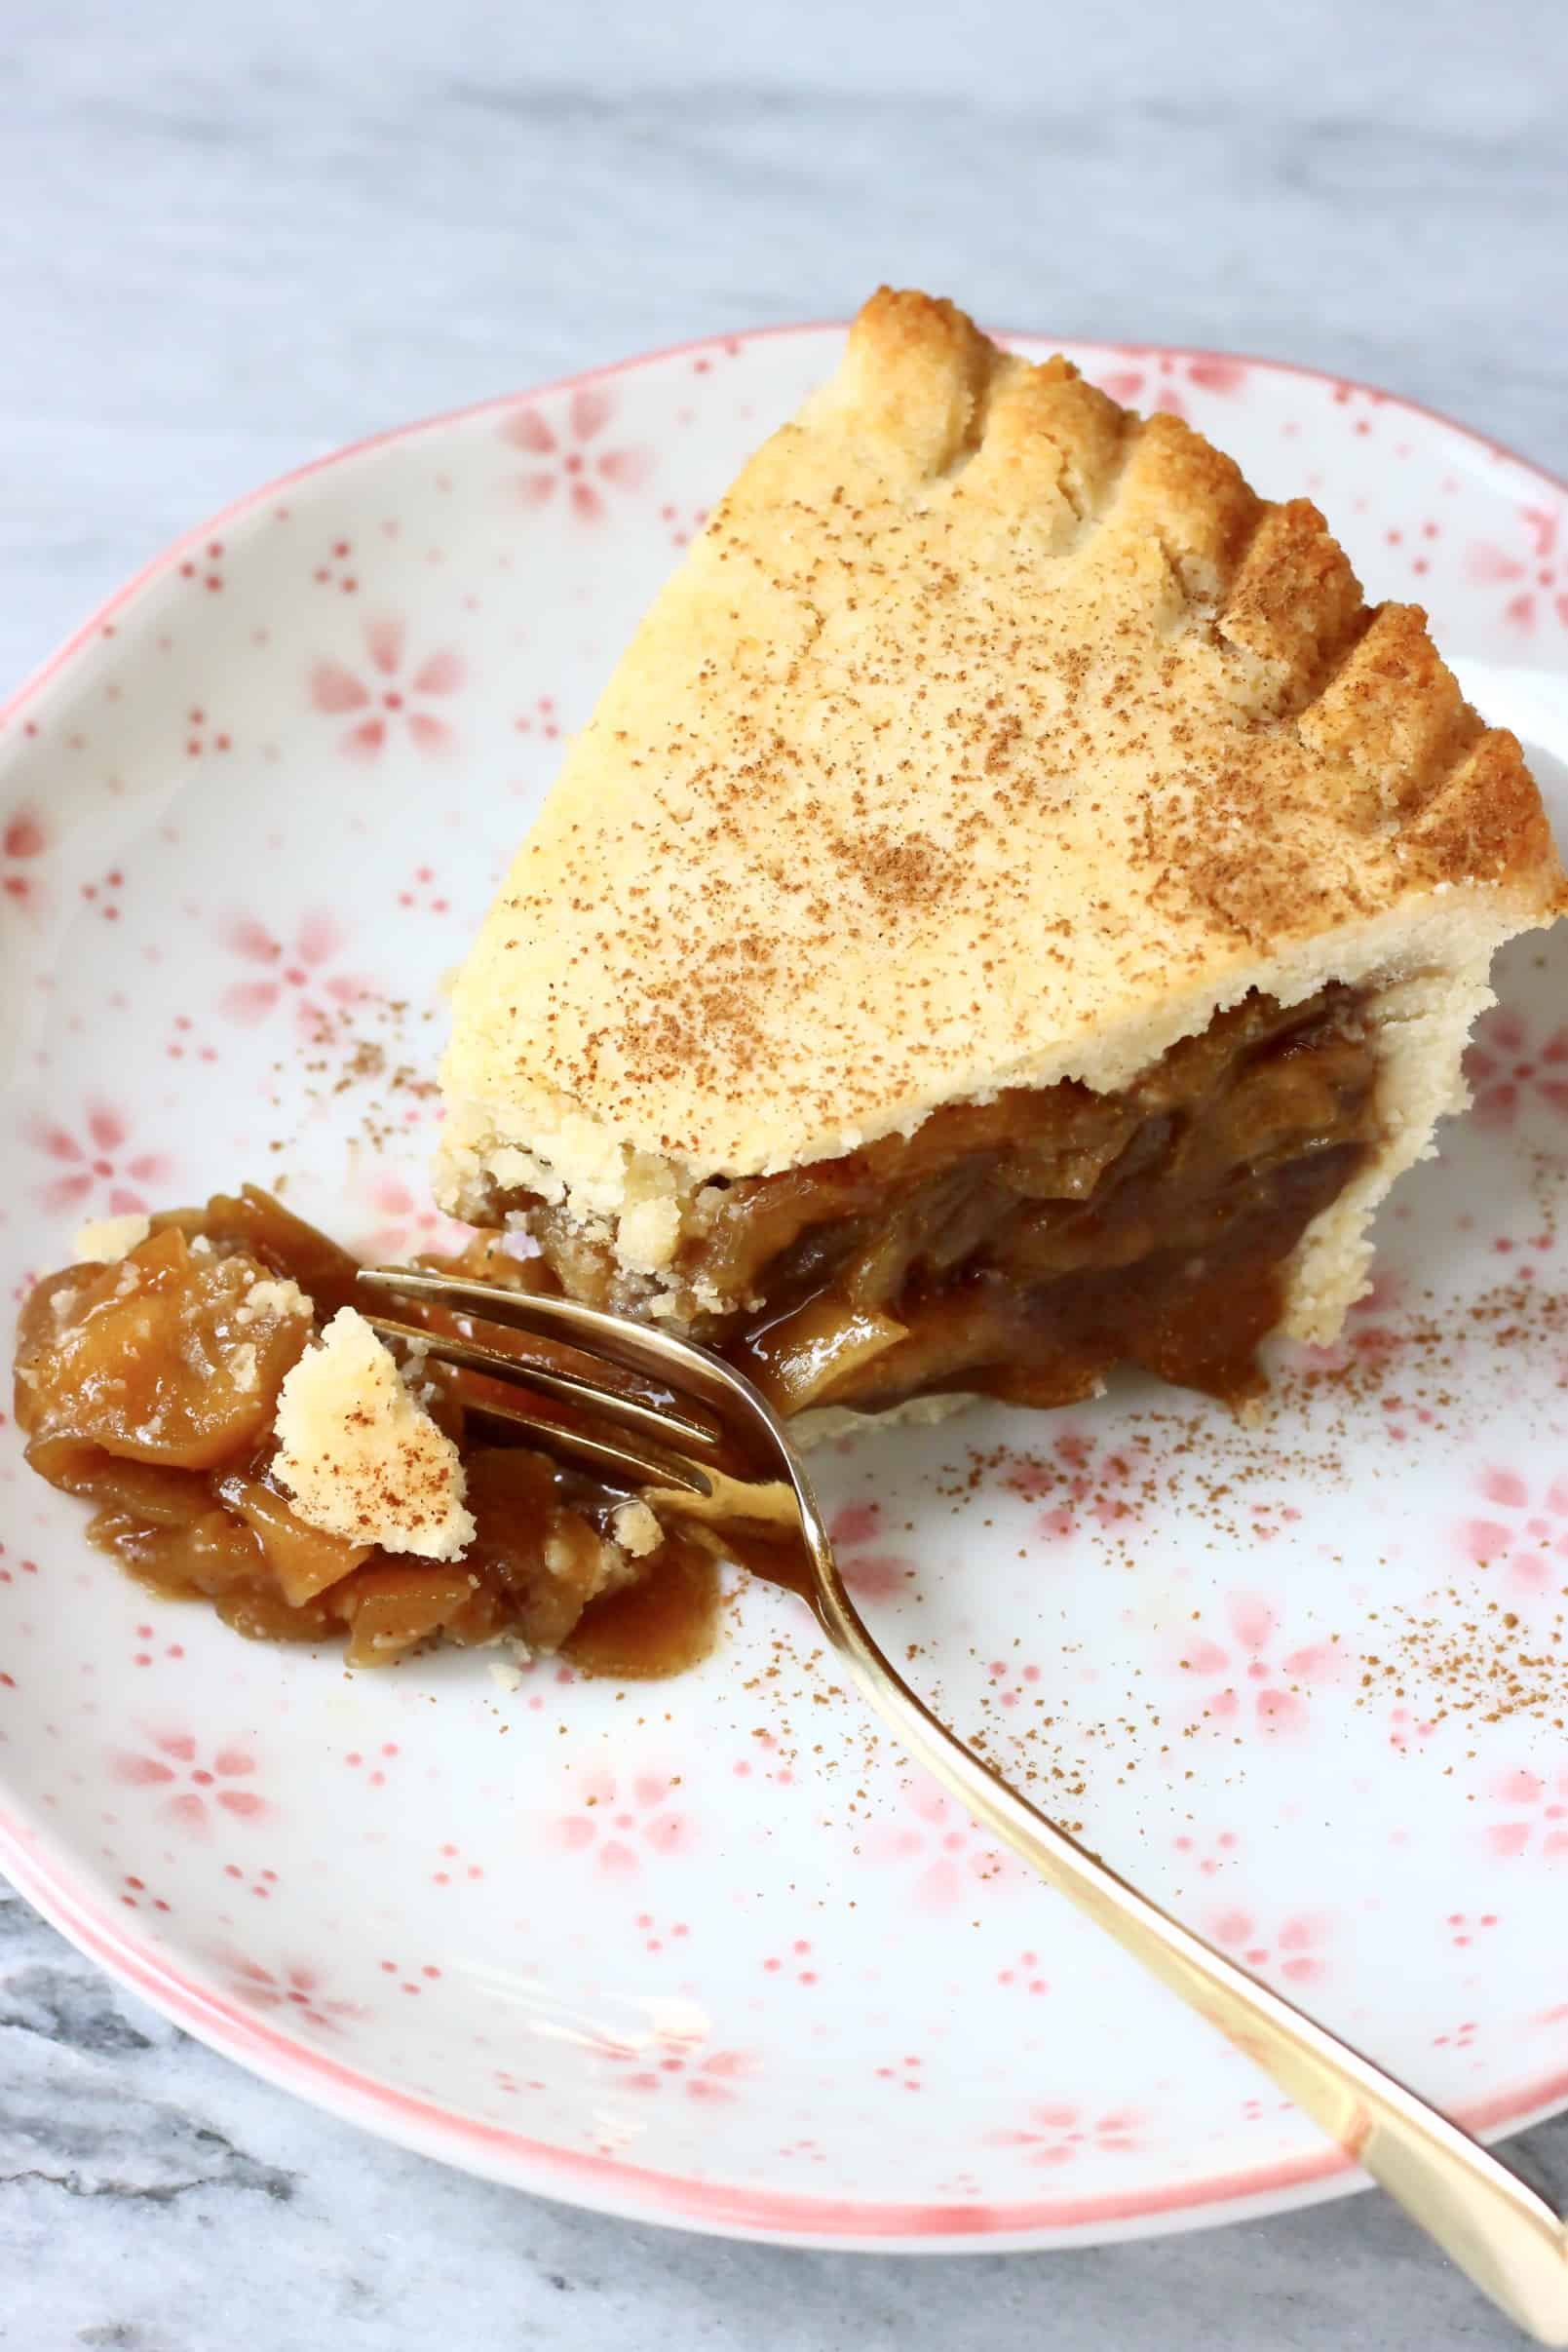 A slice of gluten-free vegan apple pie on a plate with a fork breaking off a piece